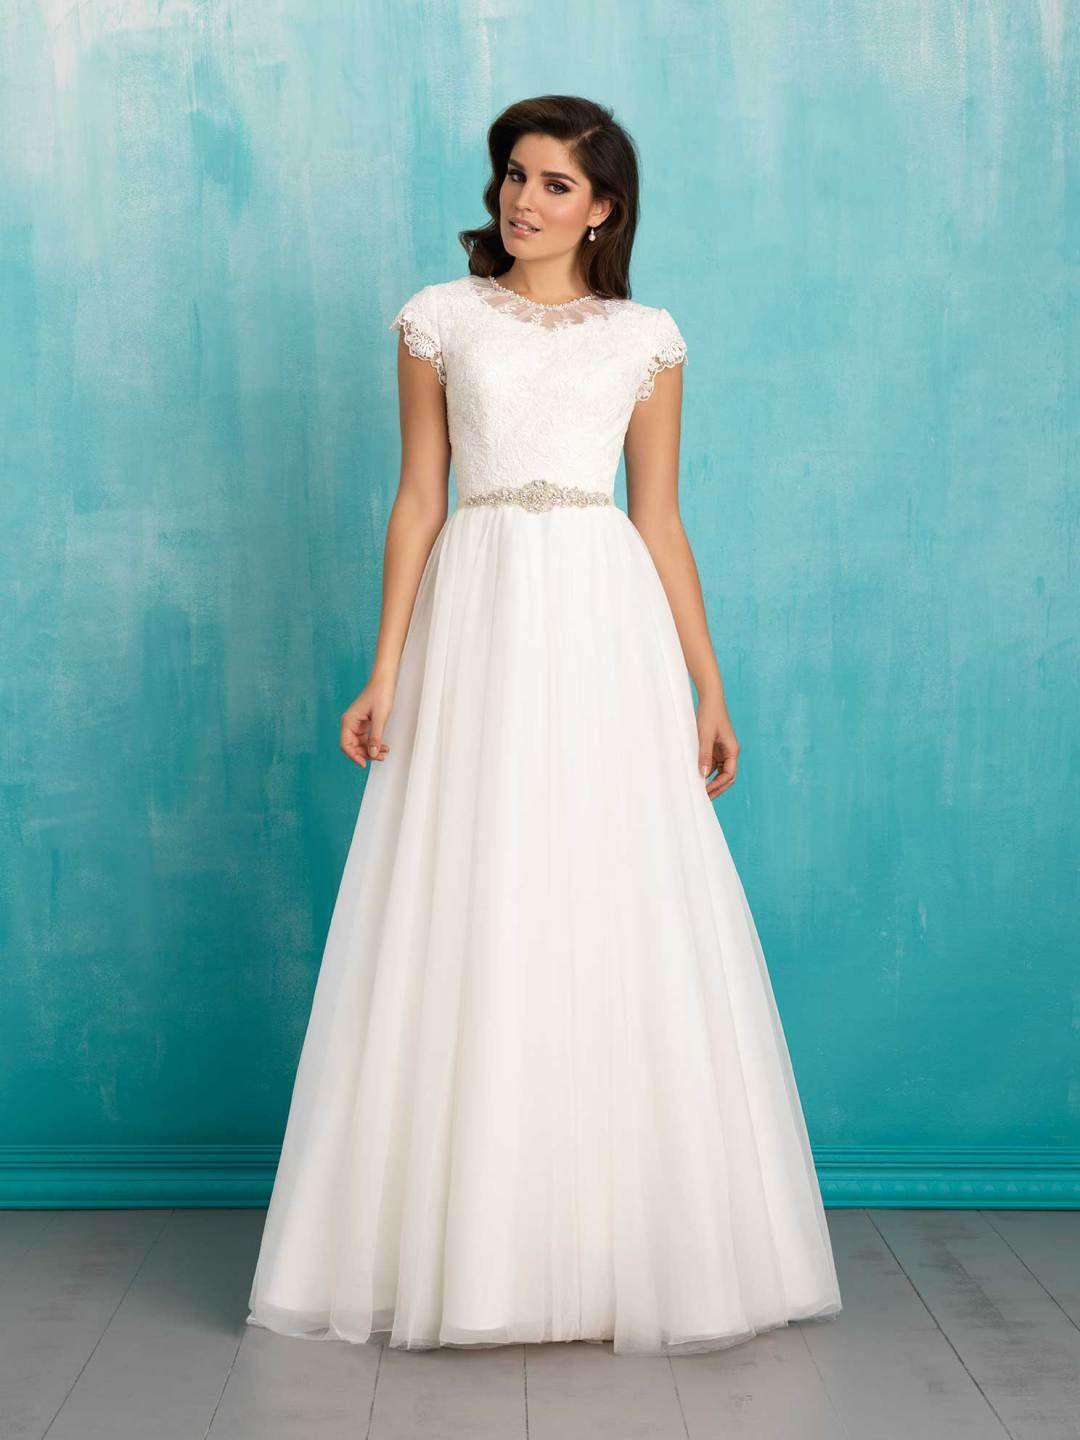 25 Modest Wedding Dresses with Short Sleeves – LDS Wedding | Modest ...